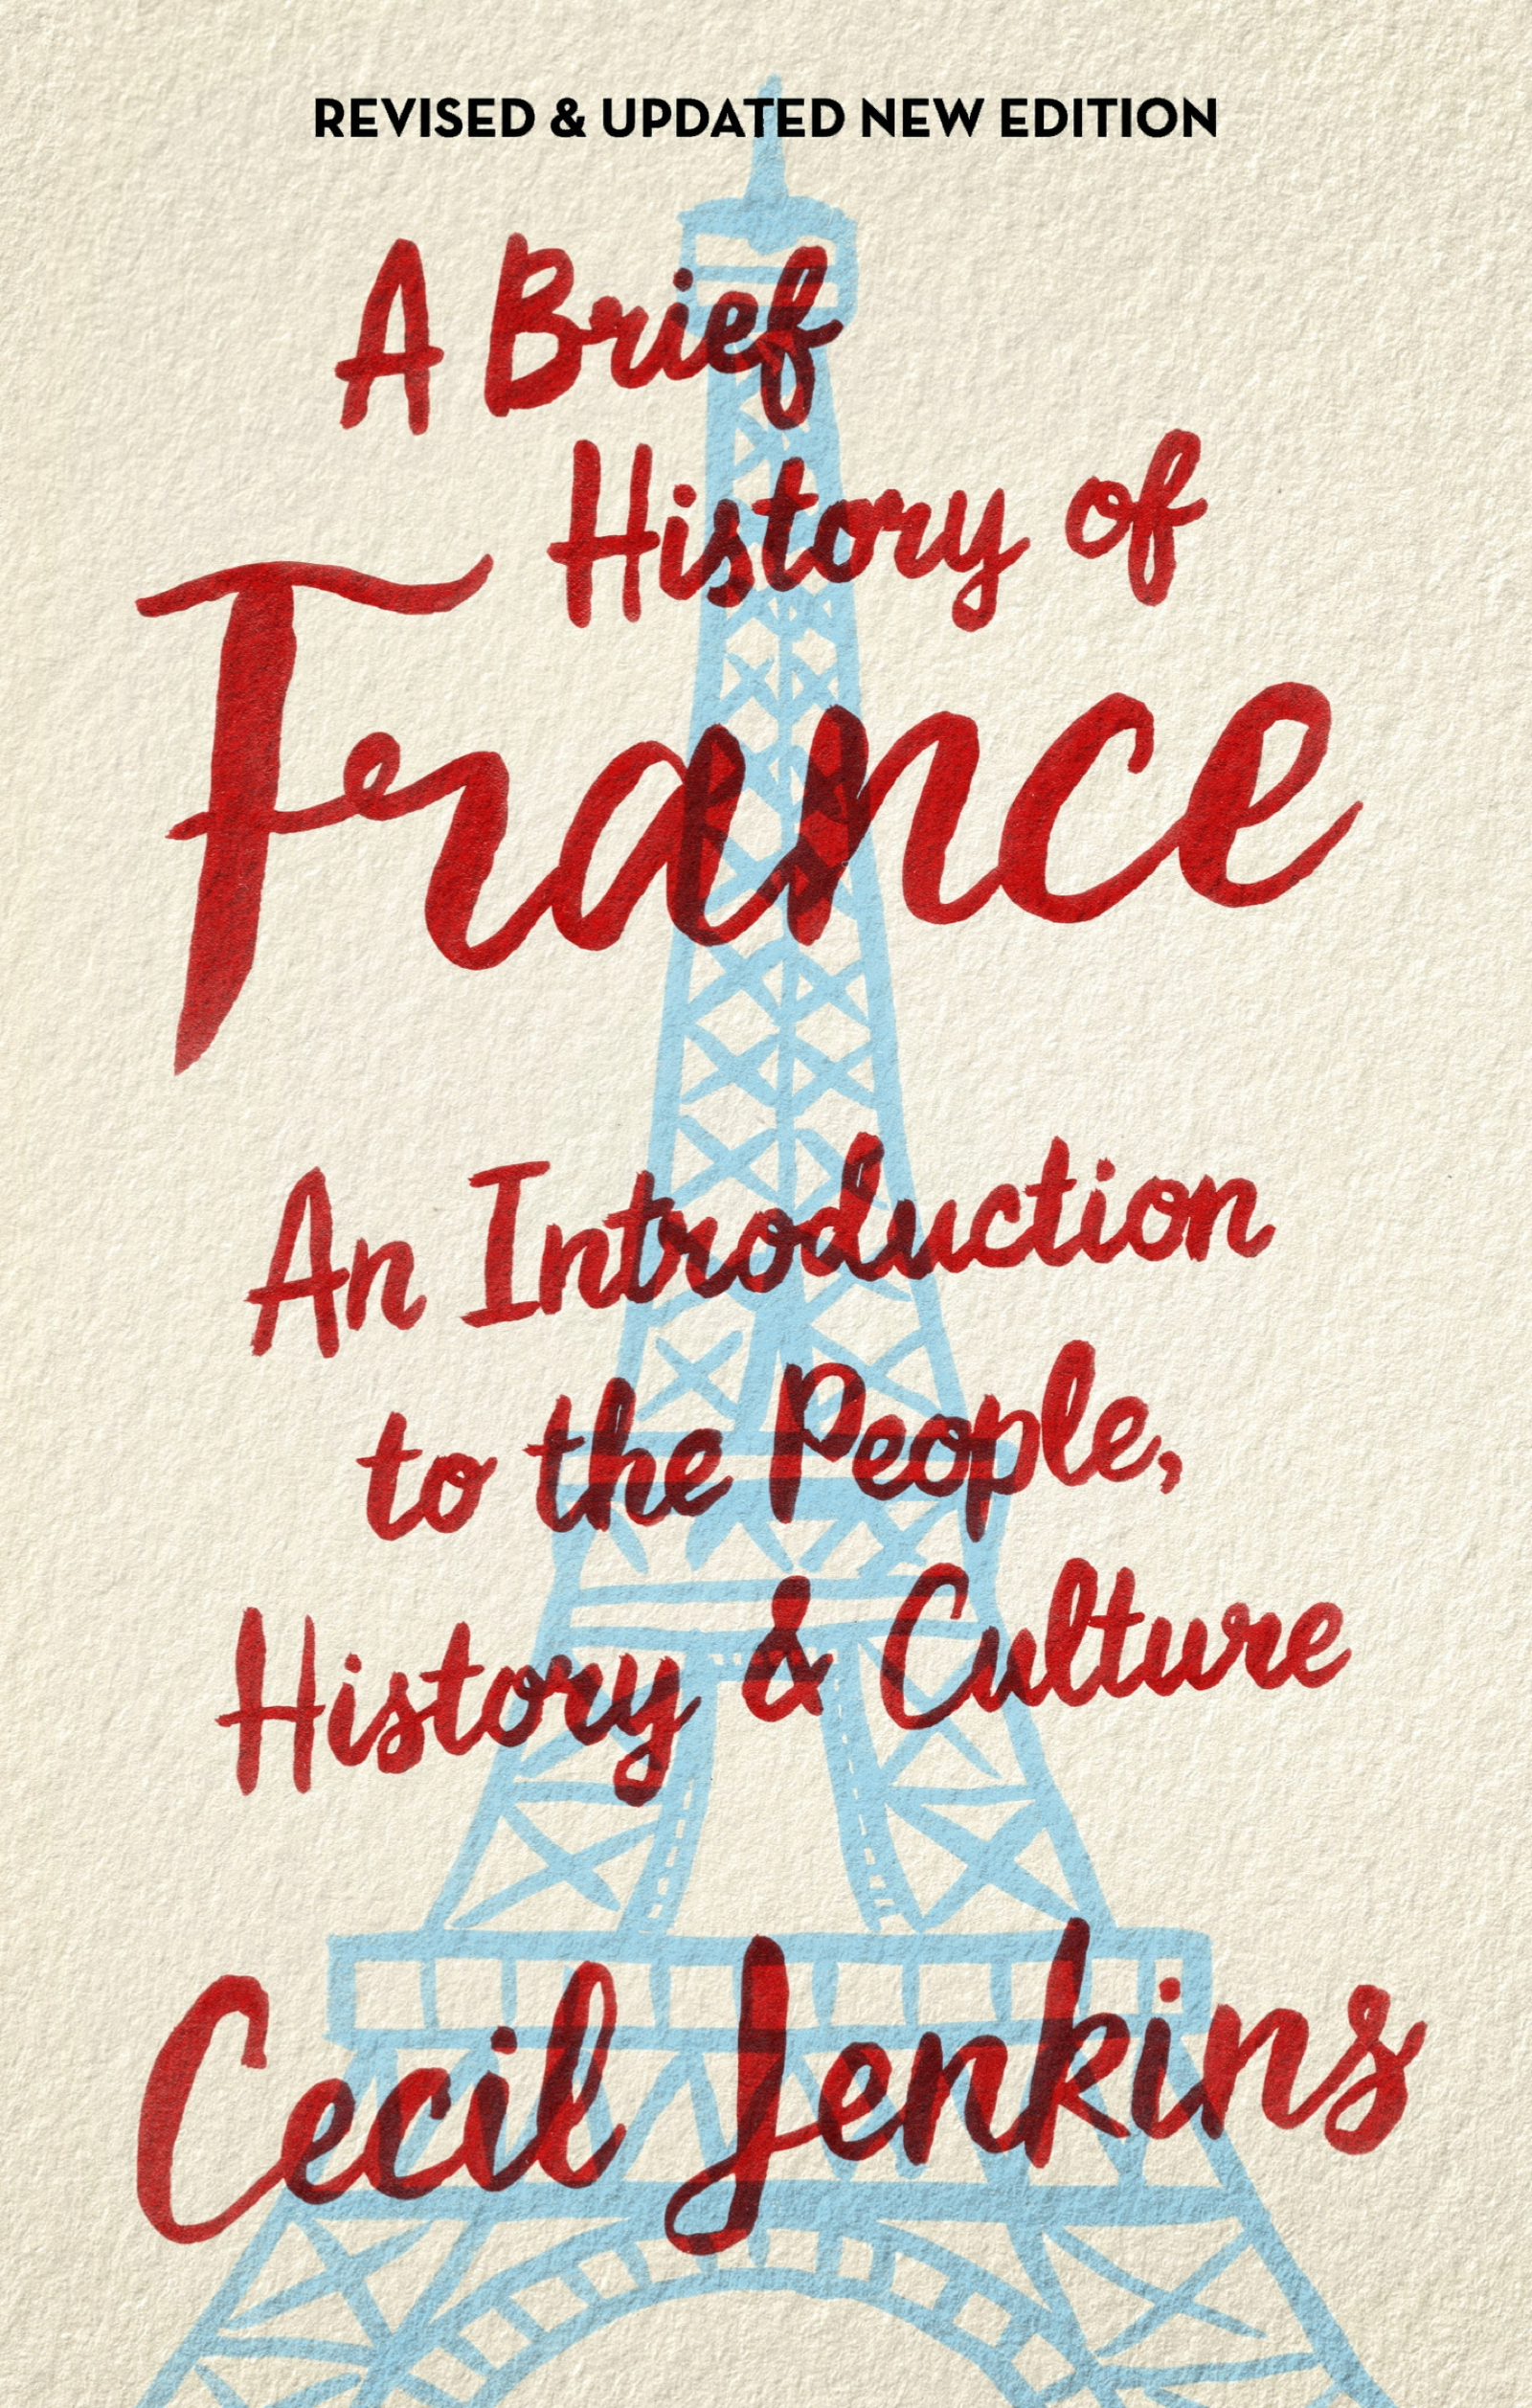 A Brief History of France